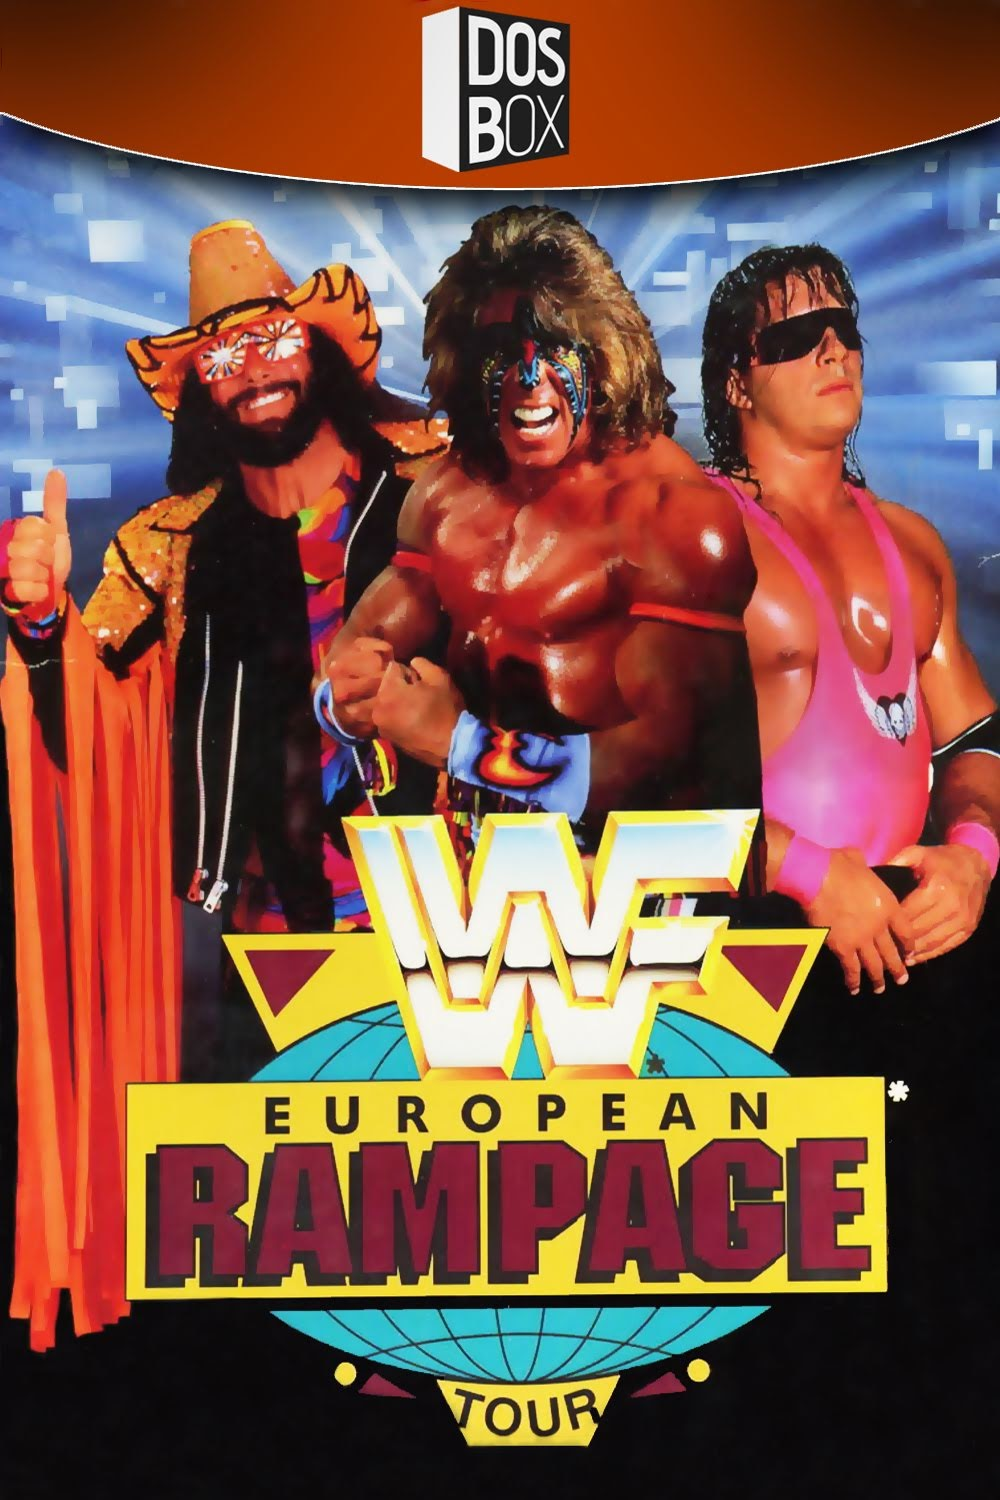 https://collectionchamber.blogspot.com/p/wwf-european-rampage-tour.html